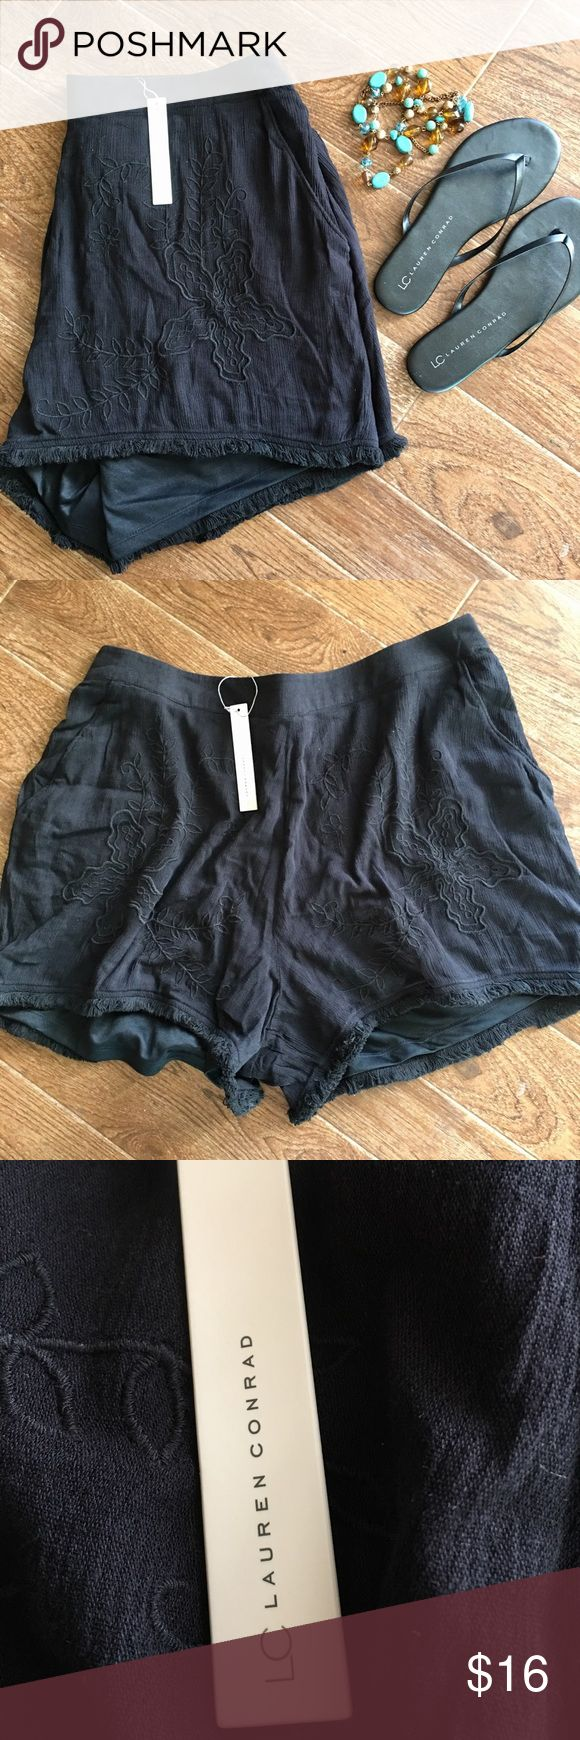 Lauren Conrad - Gorgeous Black embellished shorts Lauren Conrad brand black embellished shorts, NWT. Size XL. 52% cotton 48% rayon lining is 100% polyester and lace is 100% cotton.please check out my other boutique items and bundle and save. Super fast shipping! LC Lauren Conrad Shorts